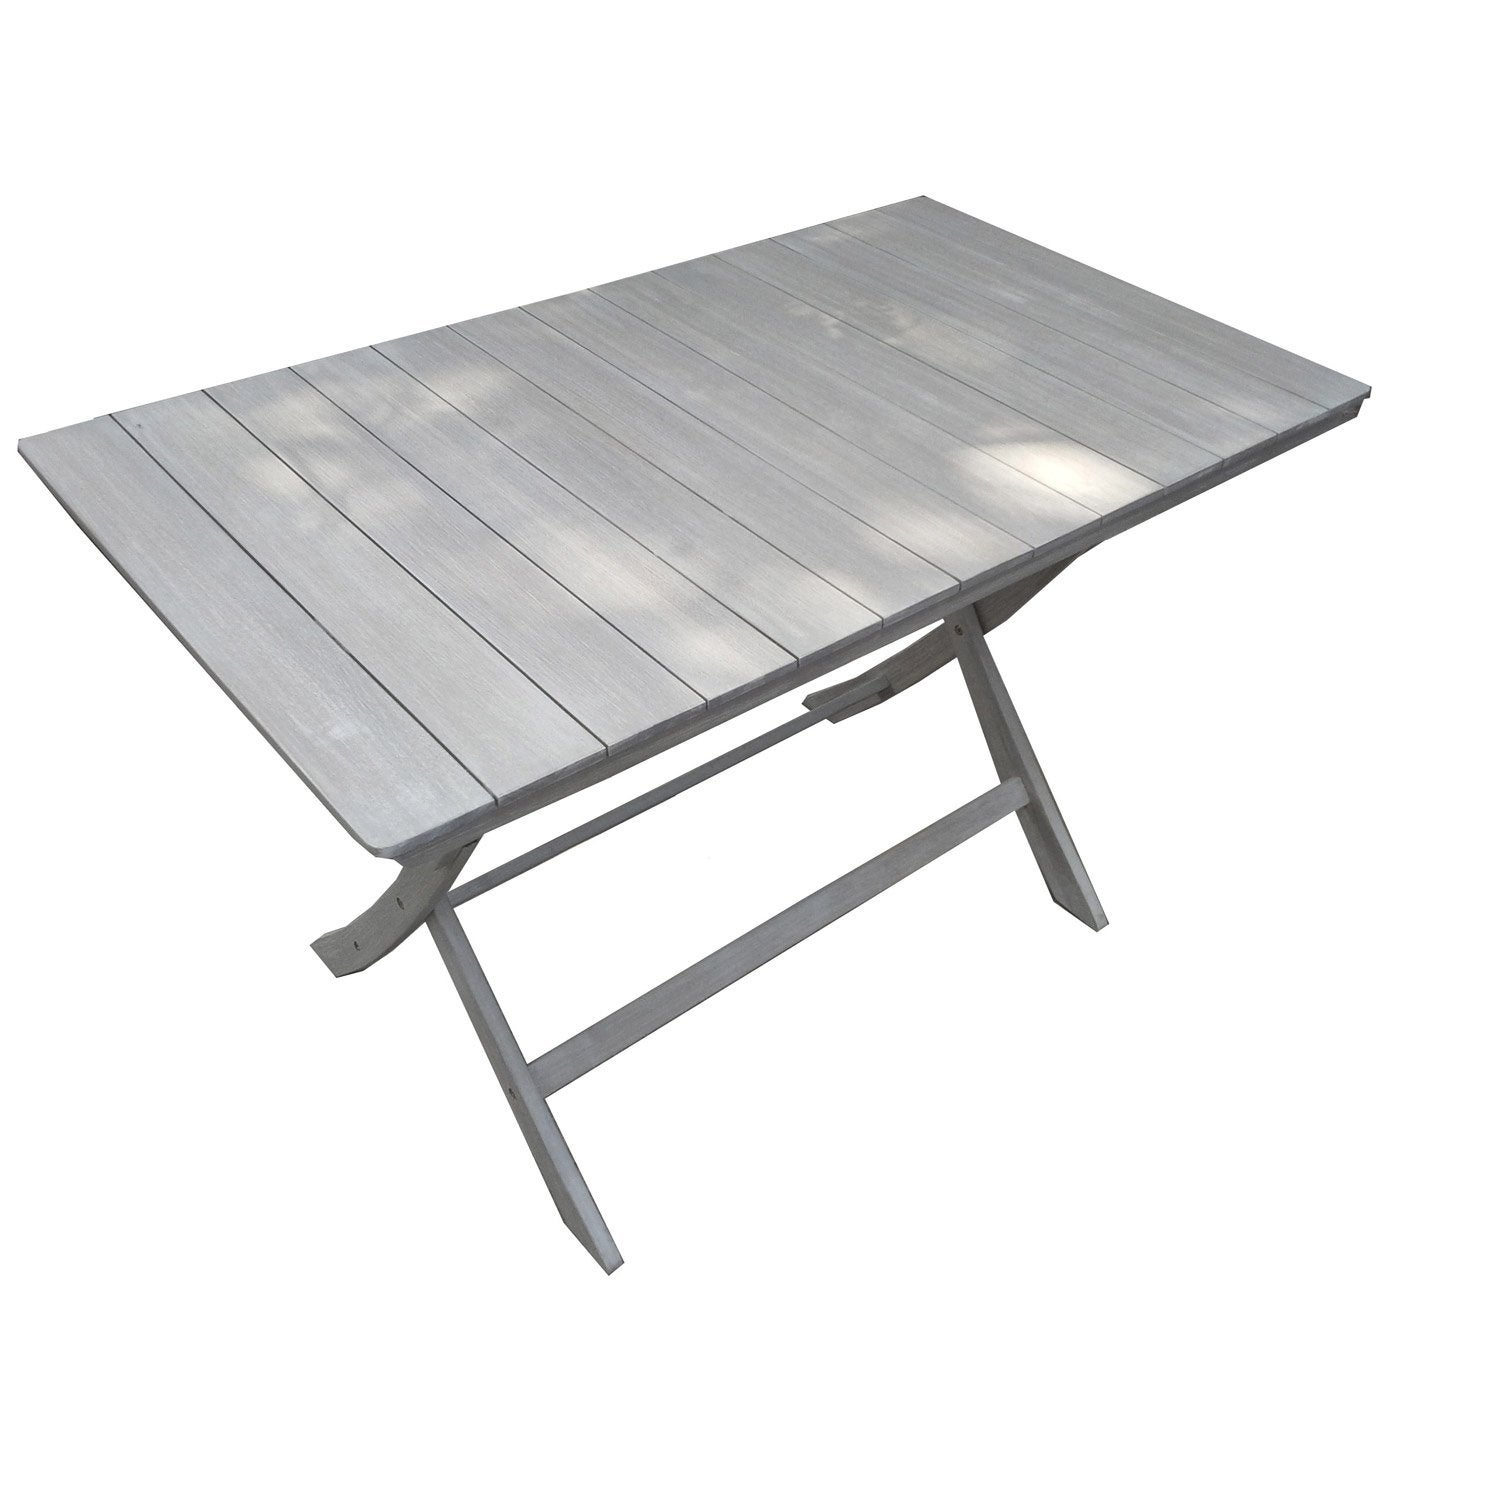 Table de jardin naterial portofino rectangulaire gris 4 for Table exterieur 2 personnes